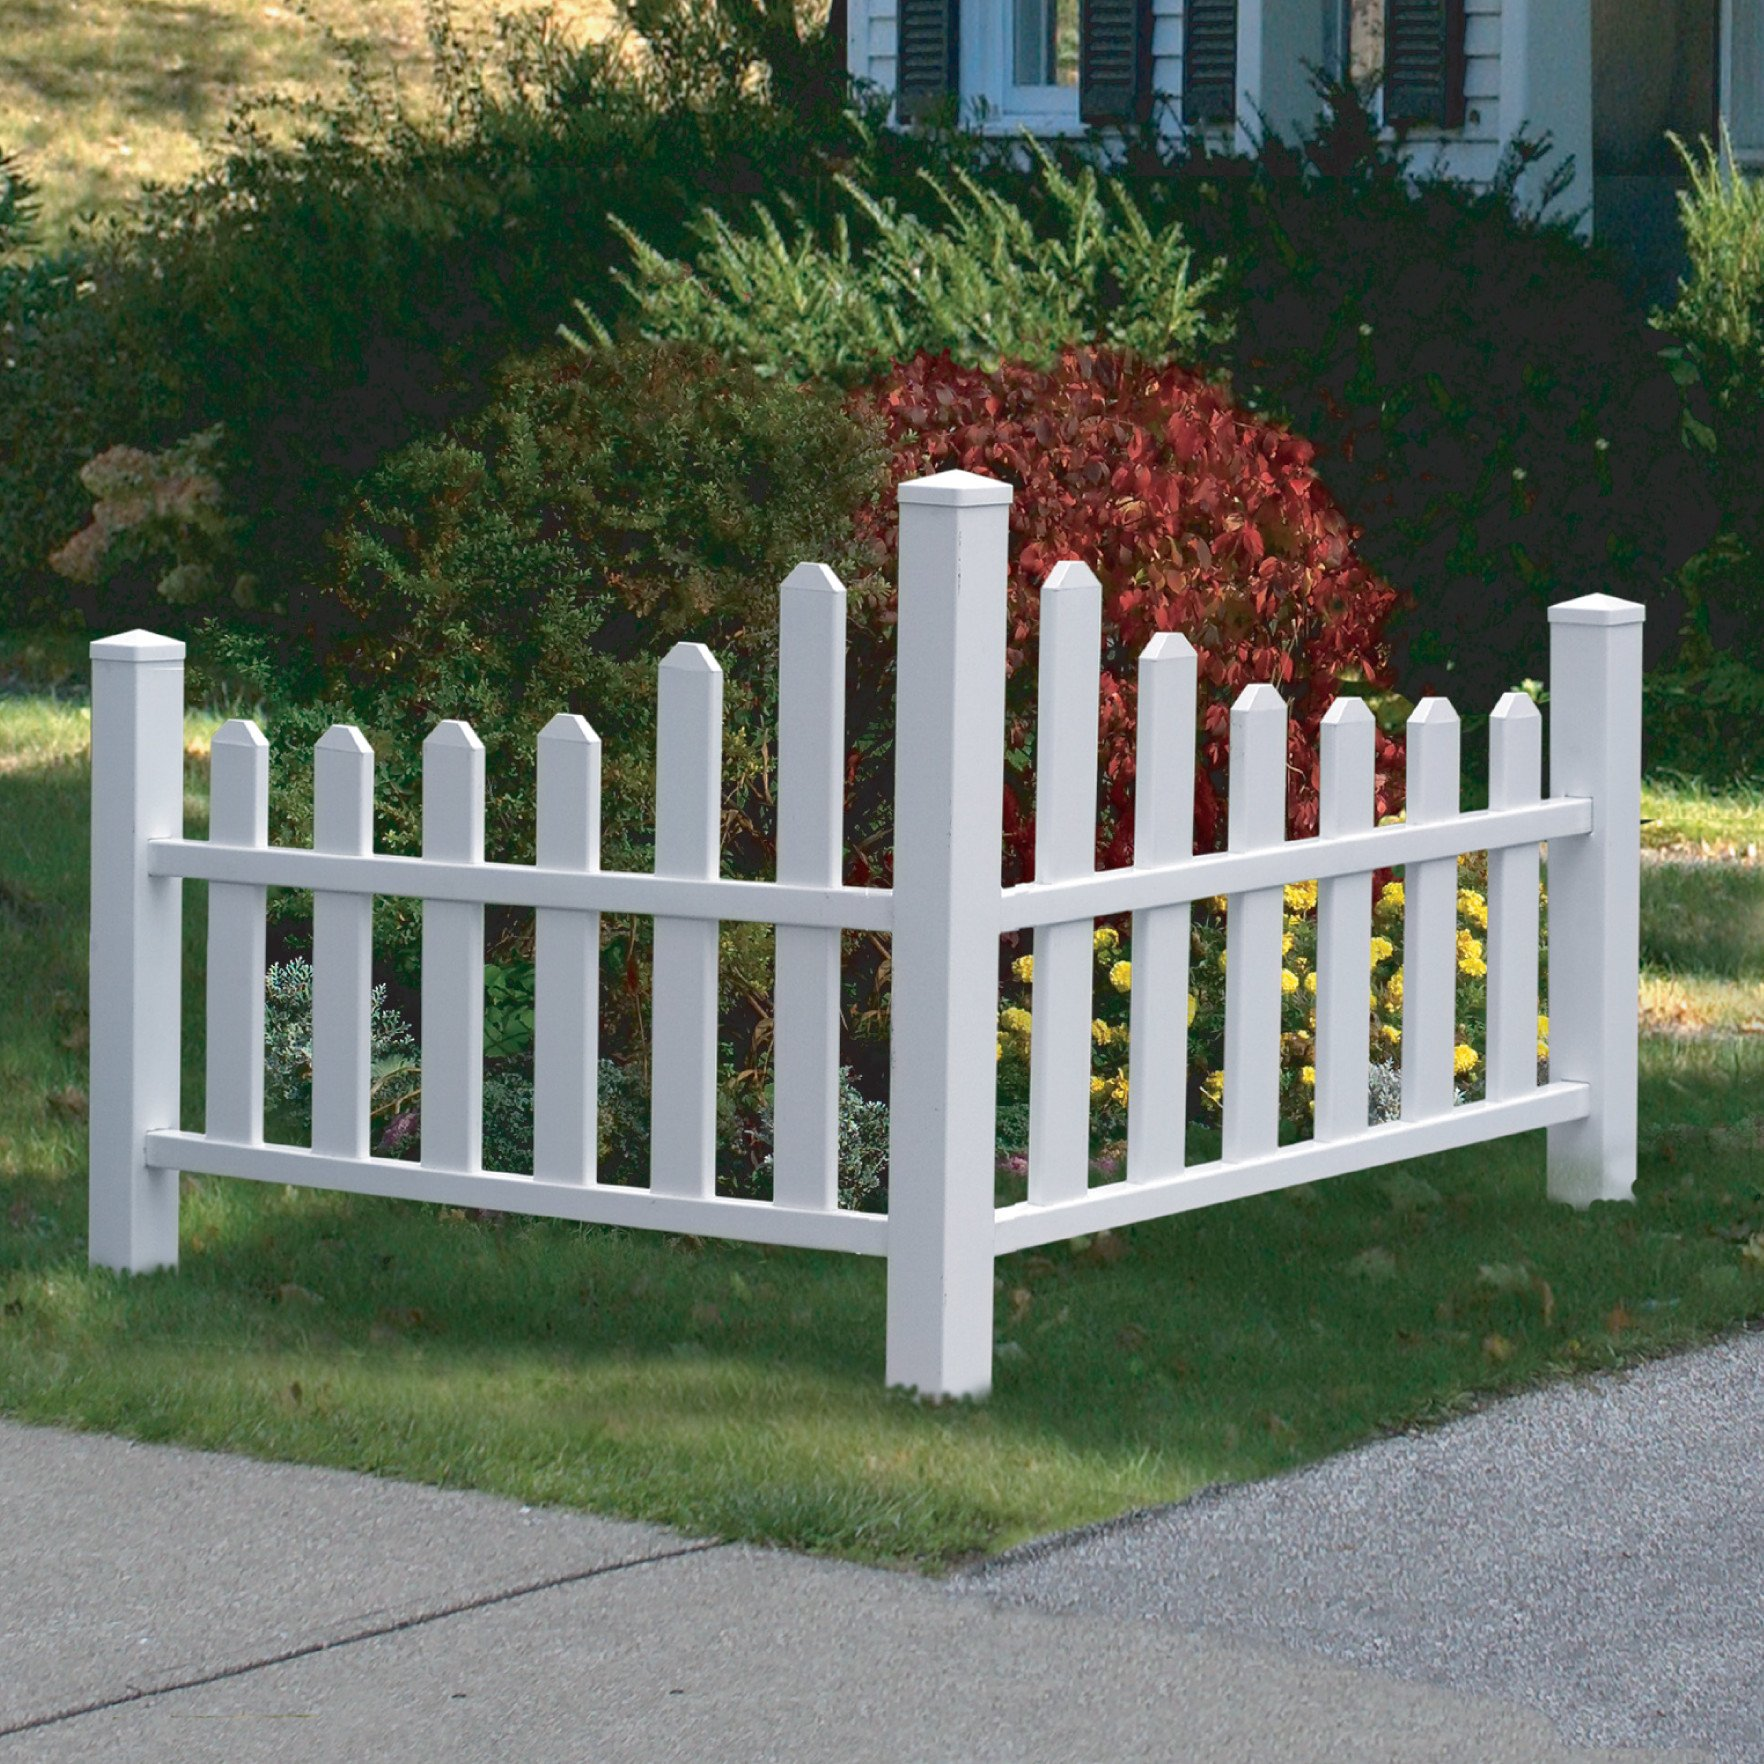 Country Corner Picket Fence Made with Vinyl in White Finish 2' 7 19/32'' H x 4' 1/2'' W x 4' 1/2'' D